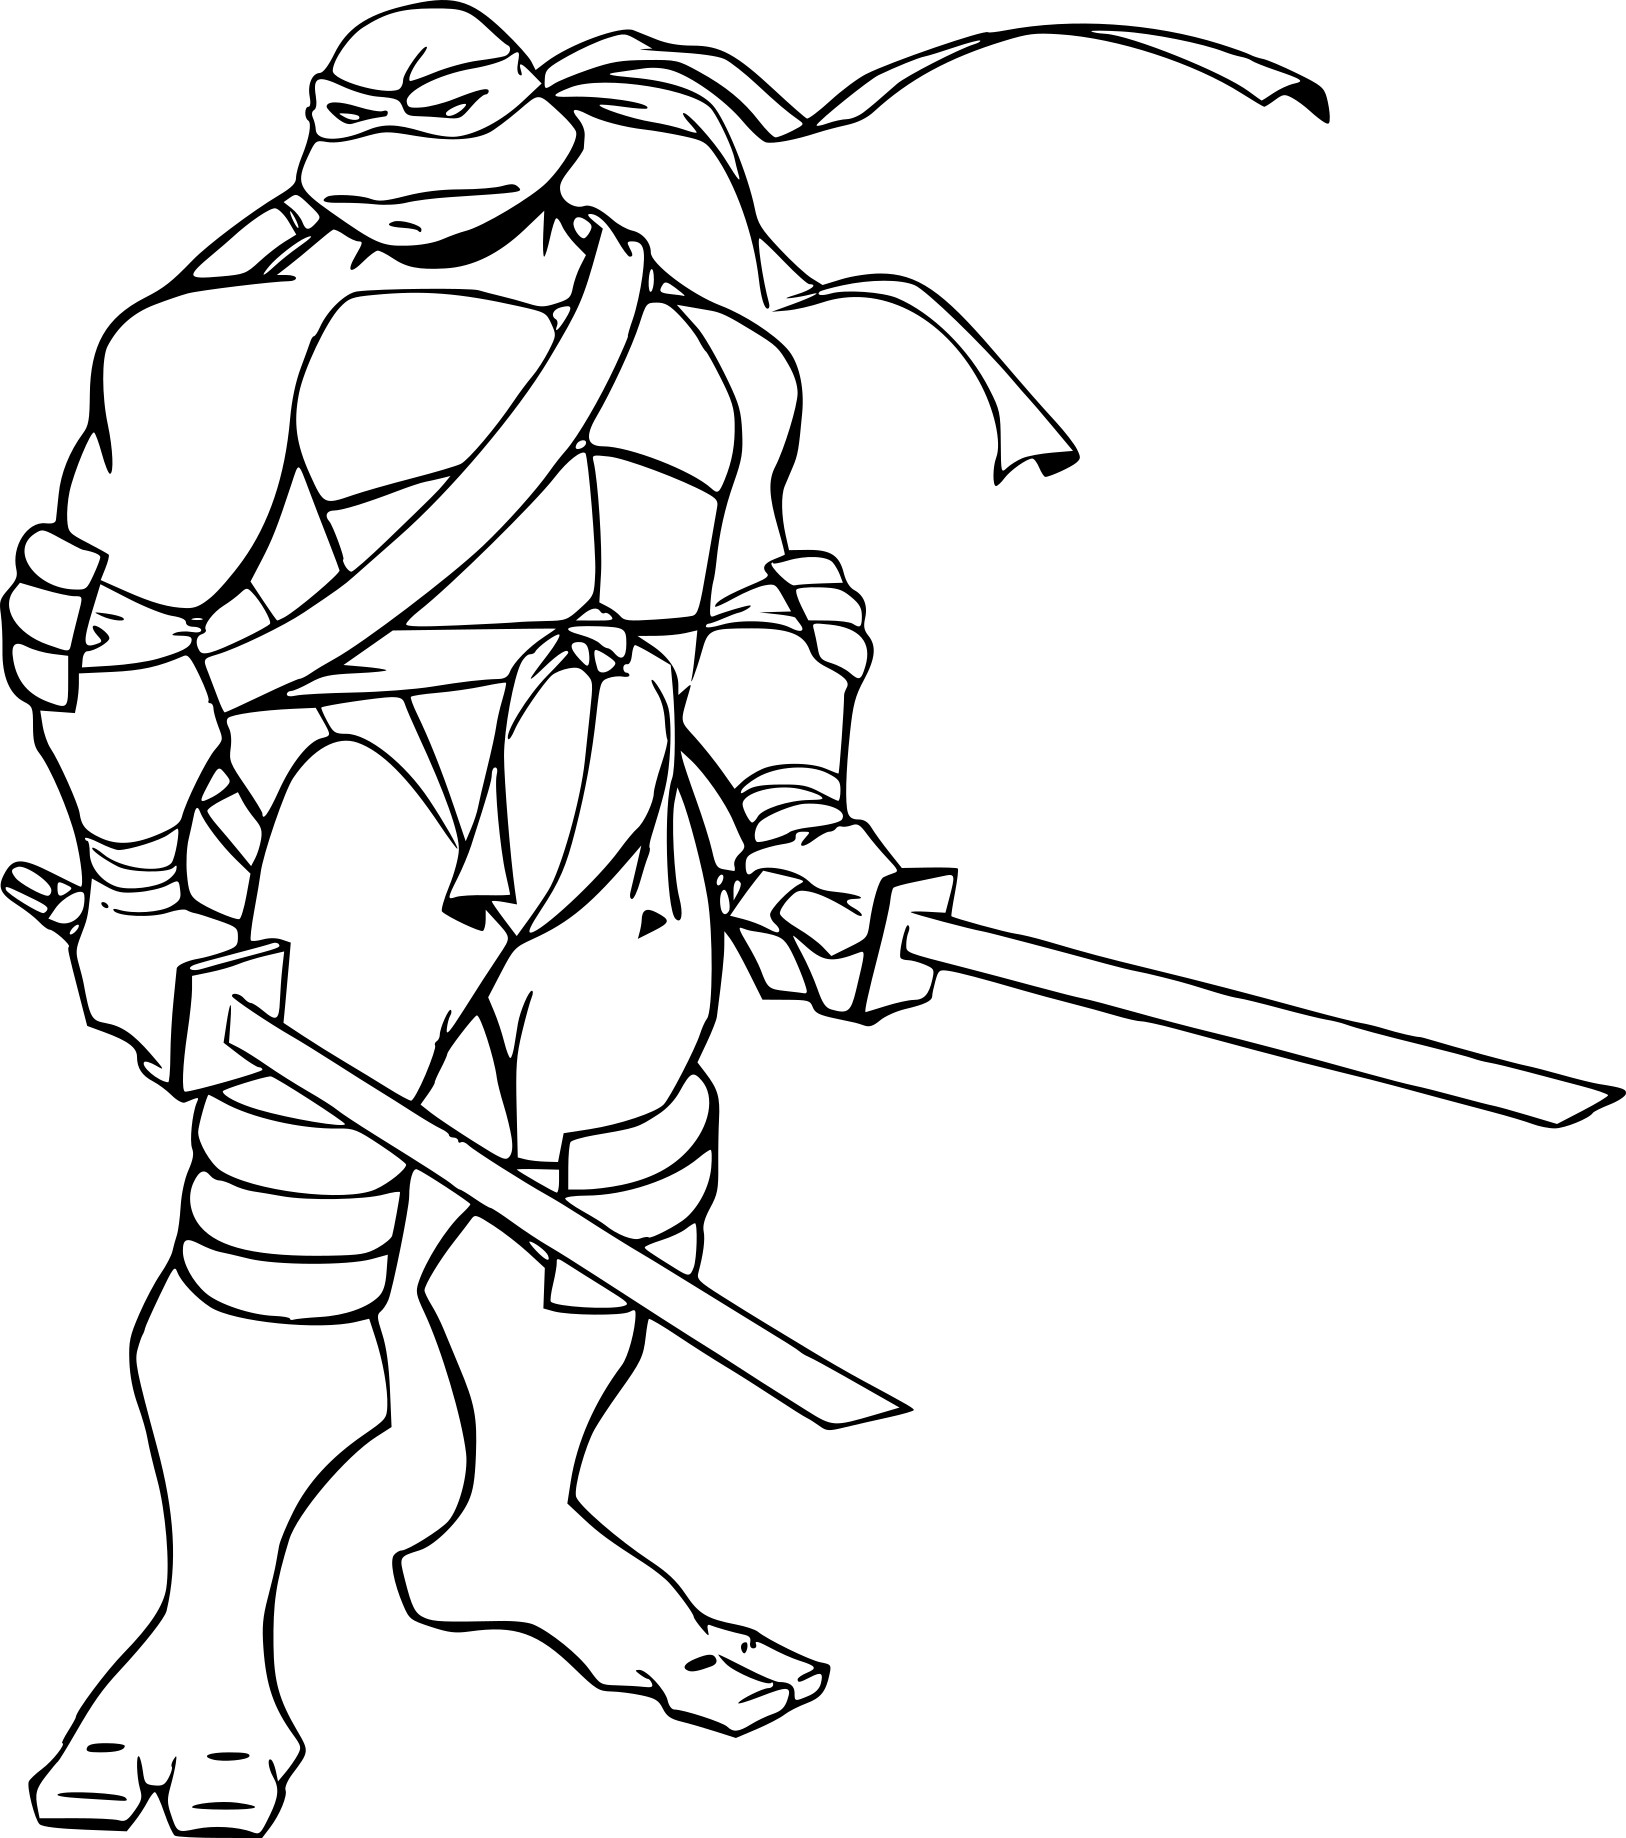 Coloriages de tortues mangas - Masque tortue ninja imprimer ...